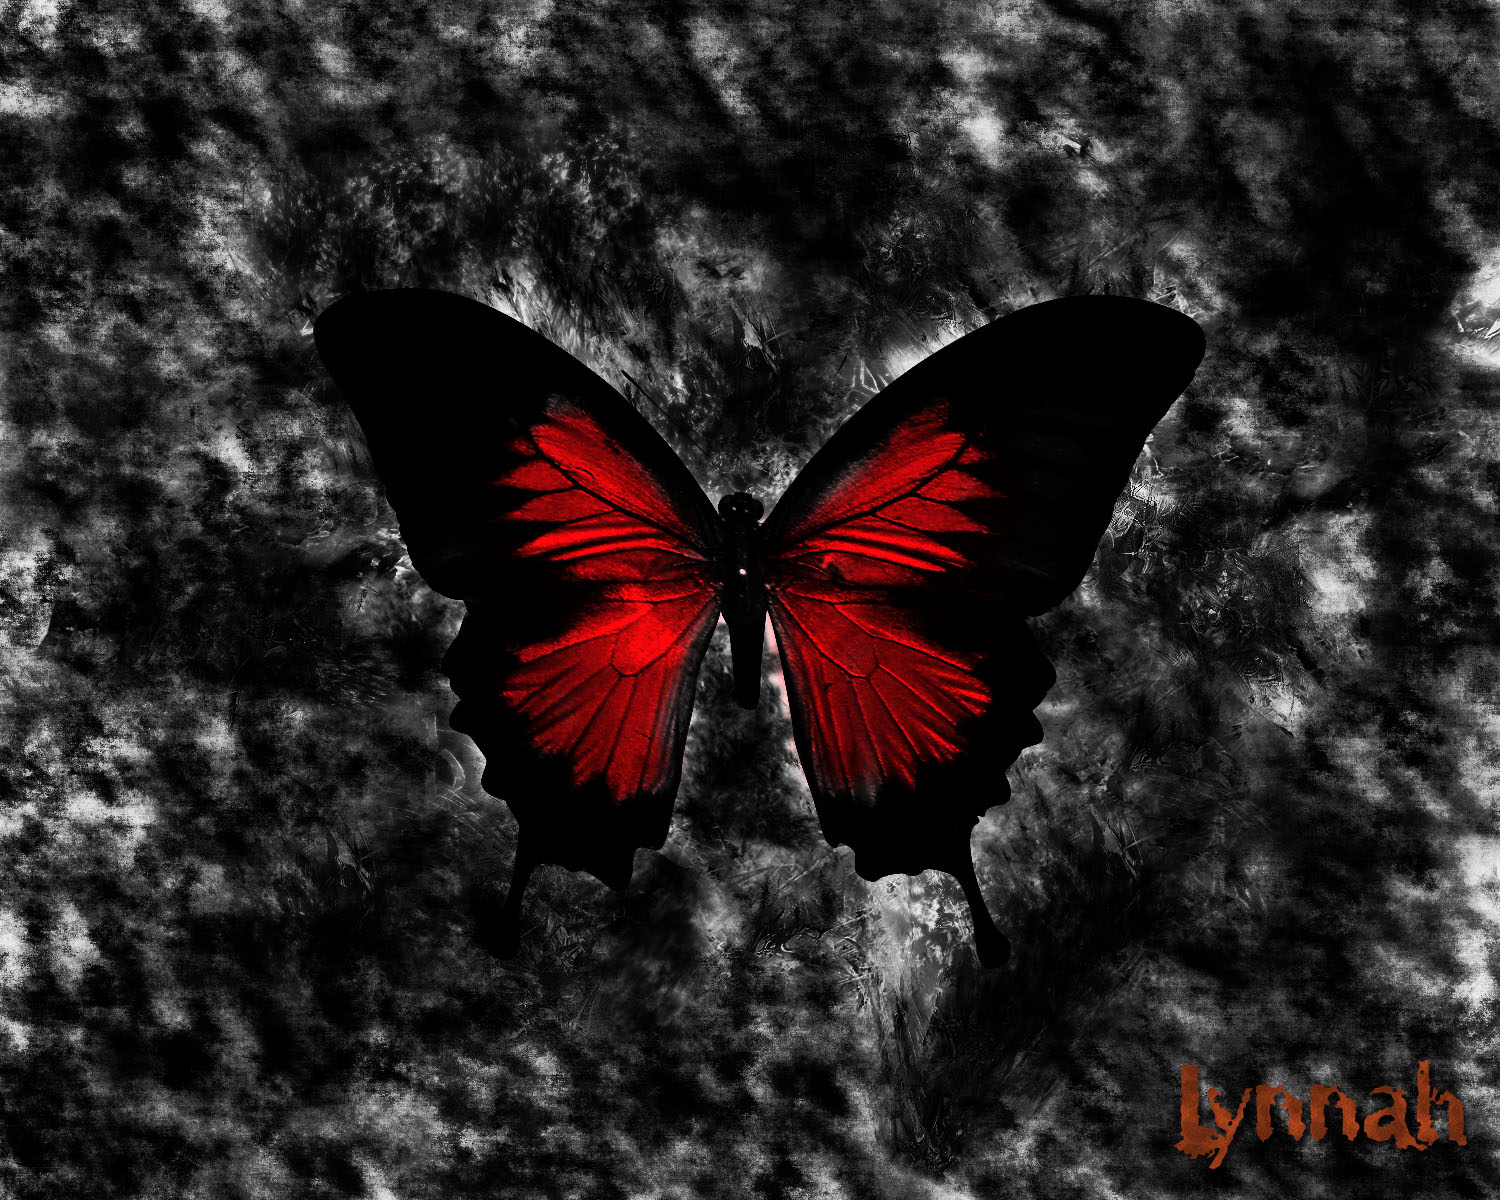 red butterfly wallpapers - photo #24